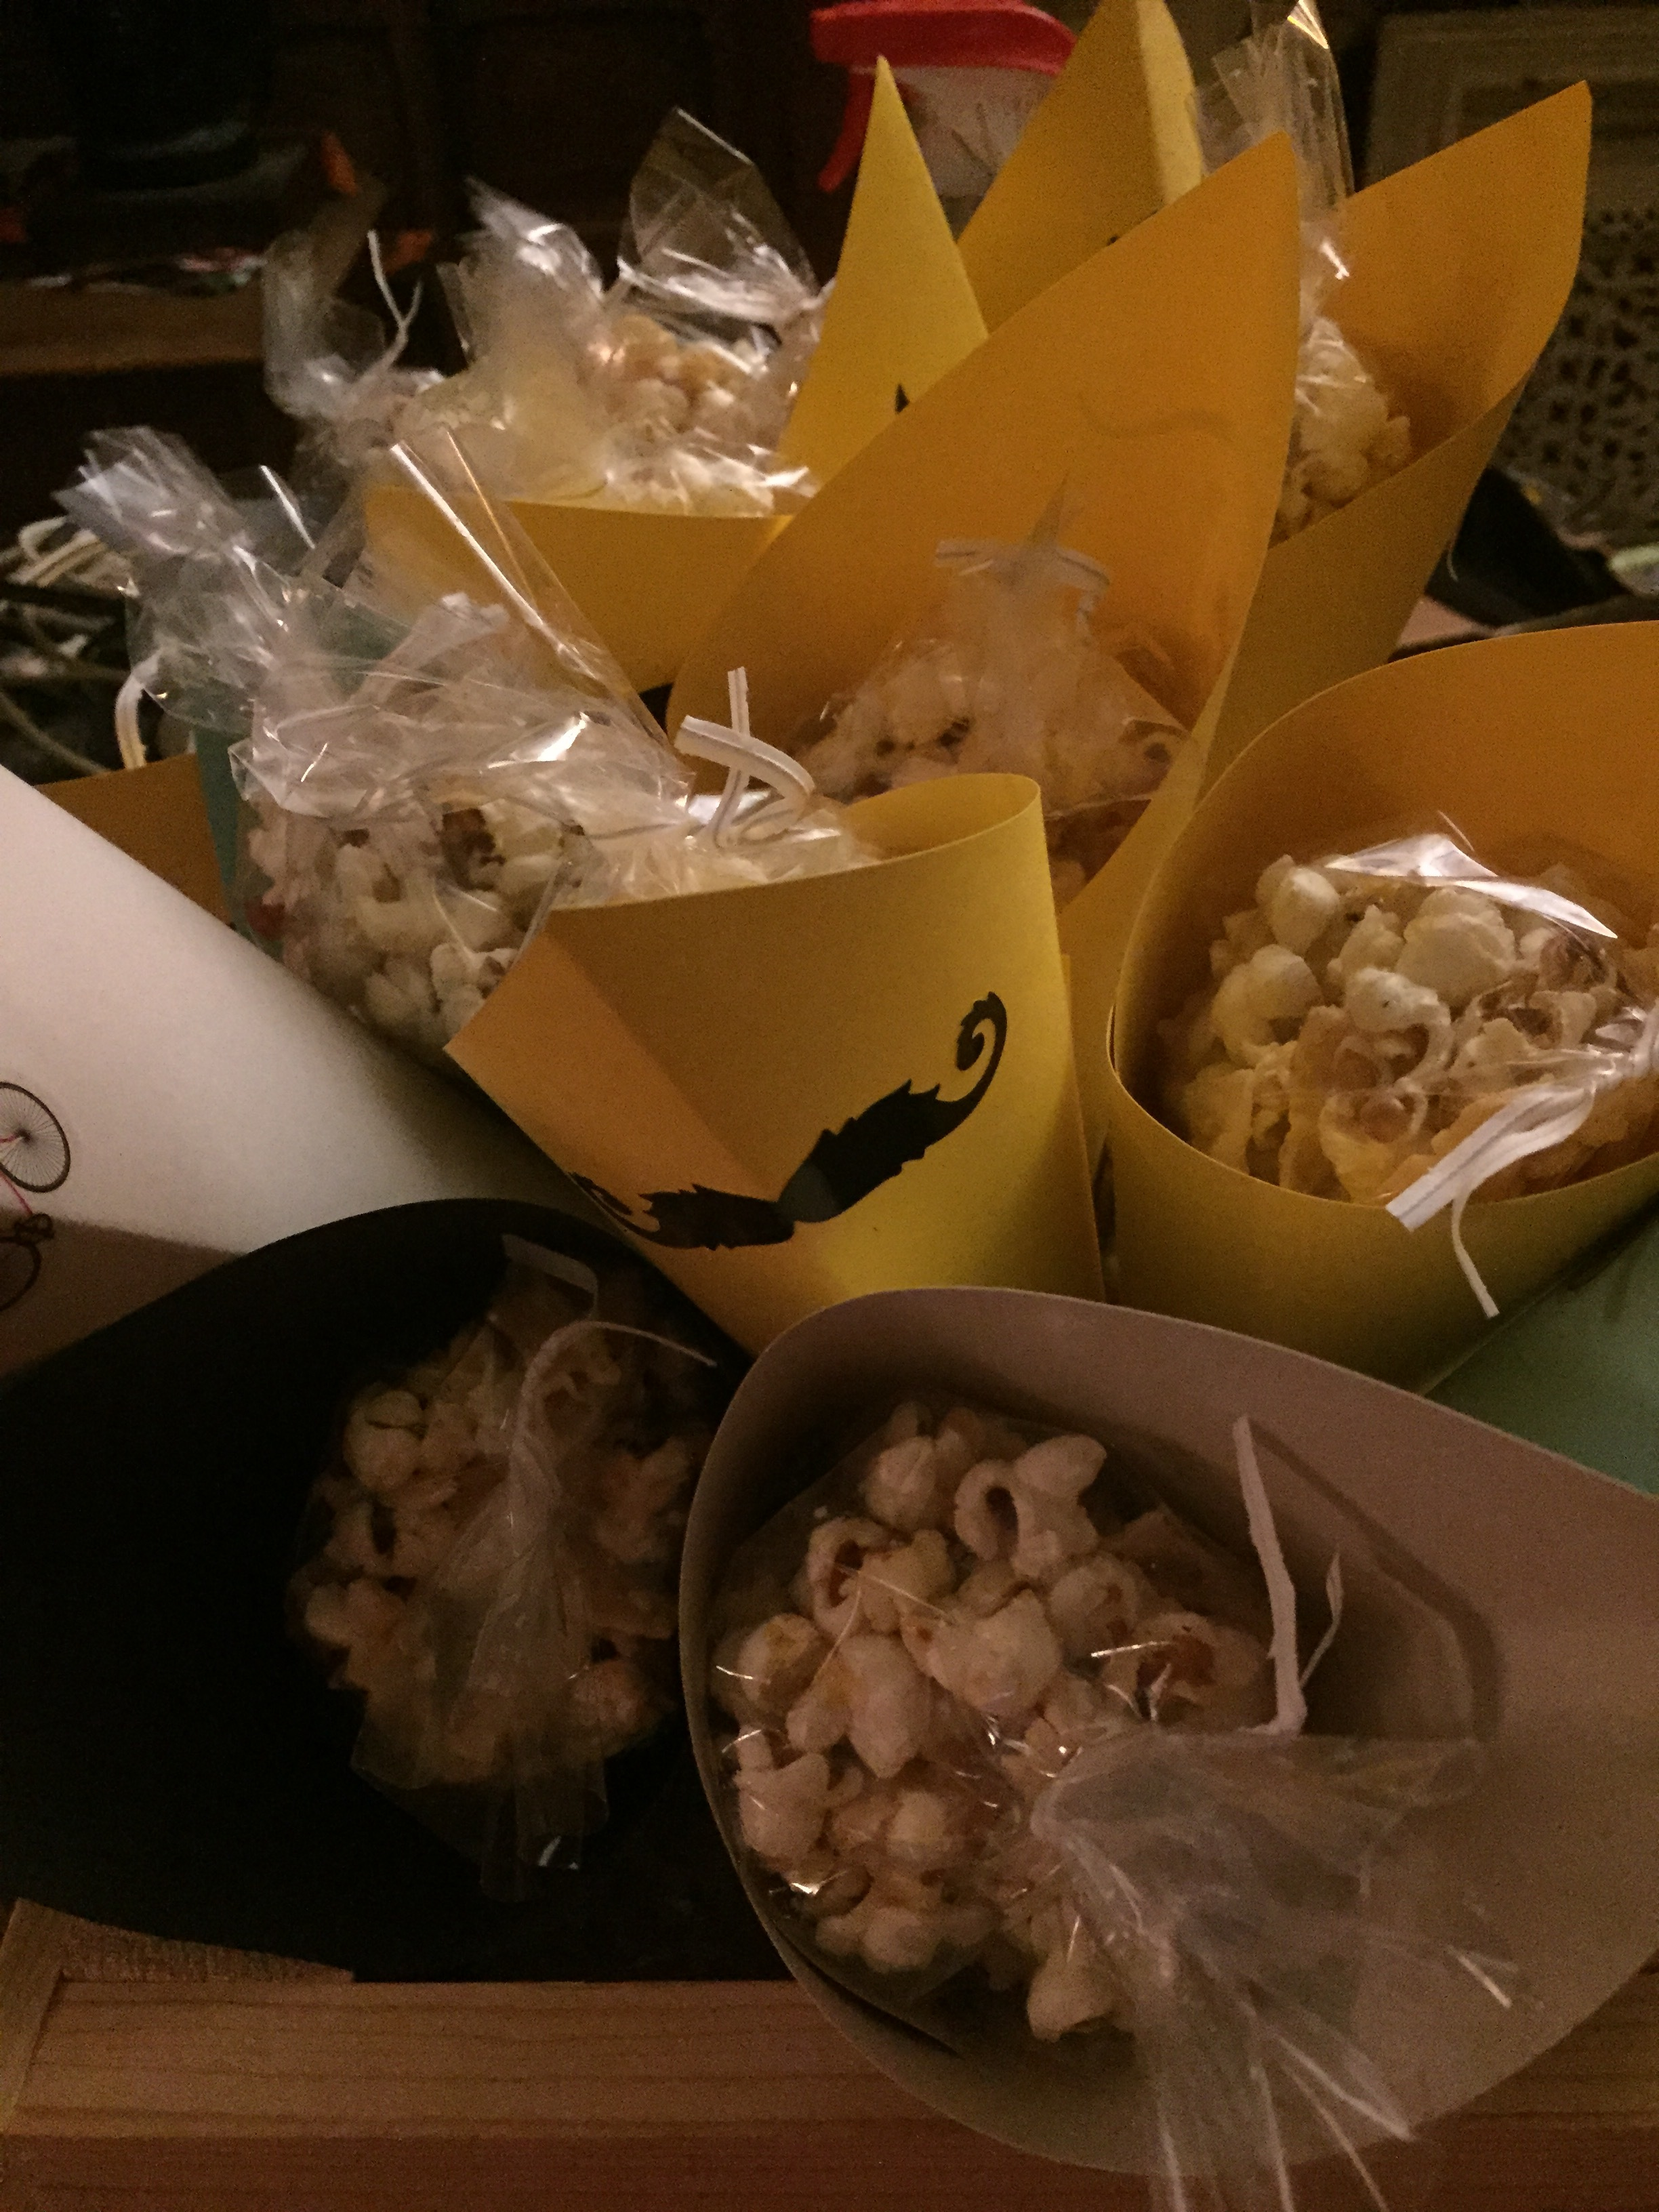 Viewing party gallery - signature popcorn.JPG